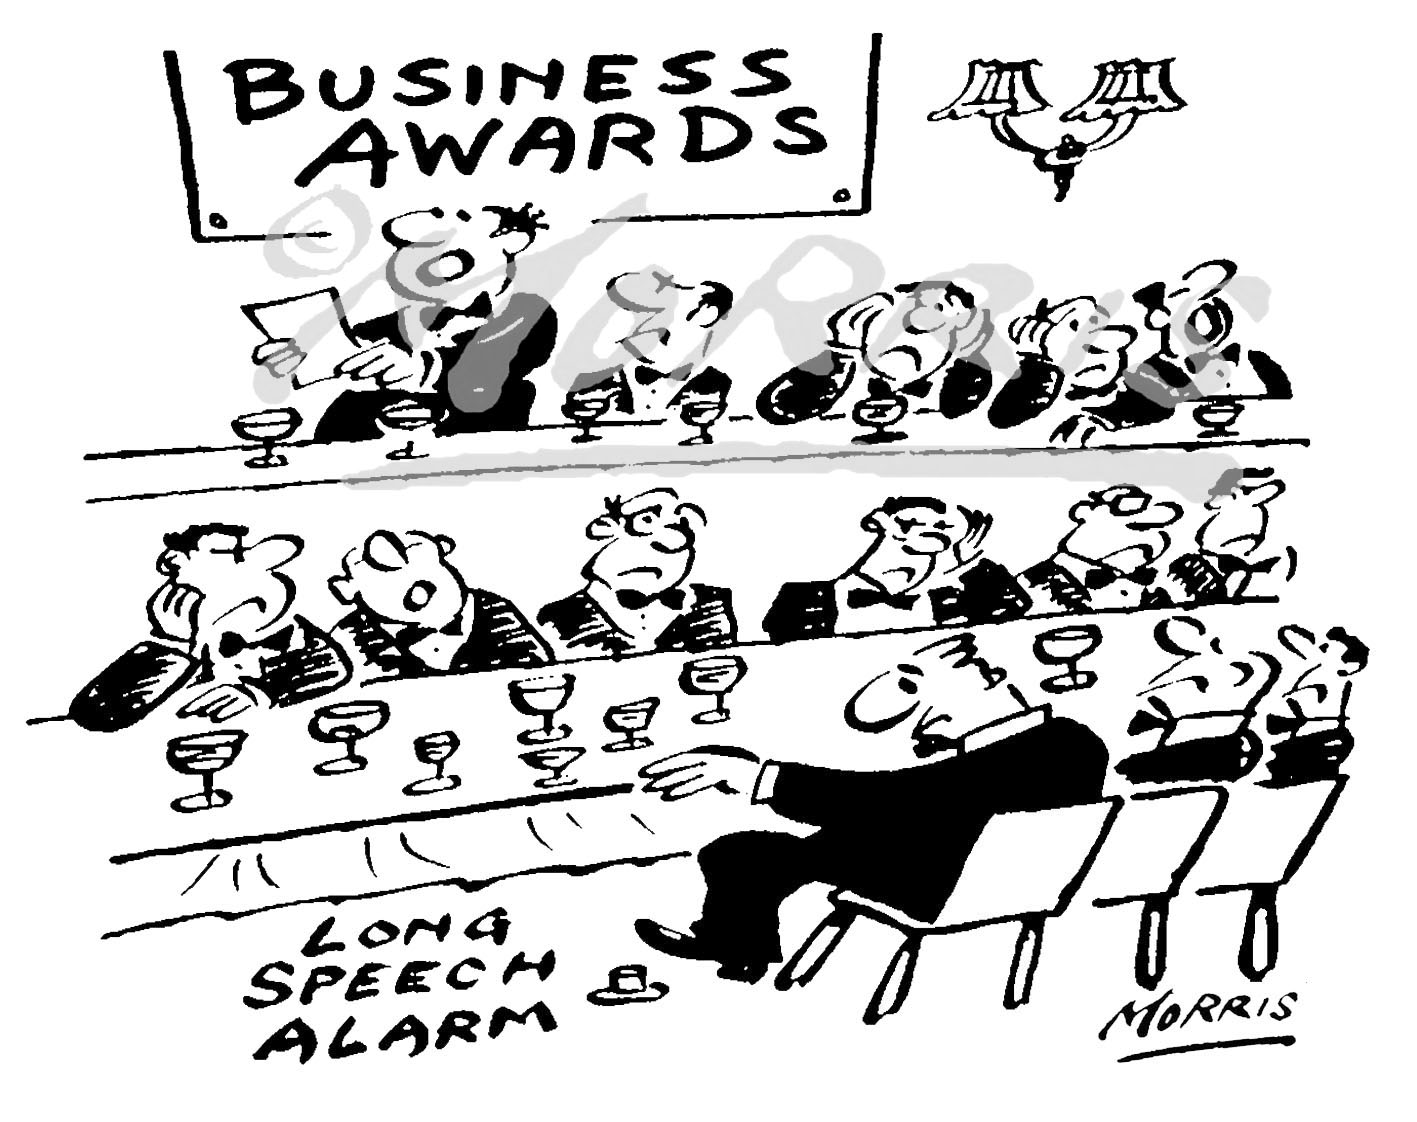 Business Awards cartoon Ref: 4578bw